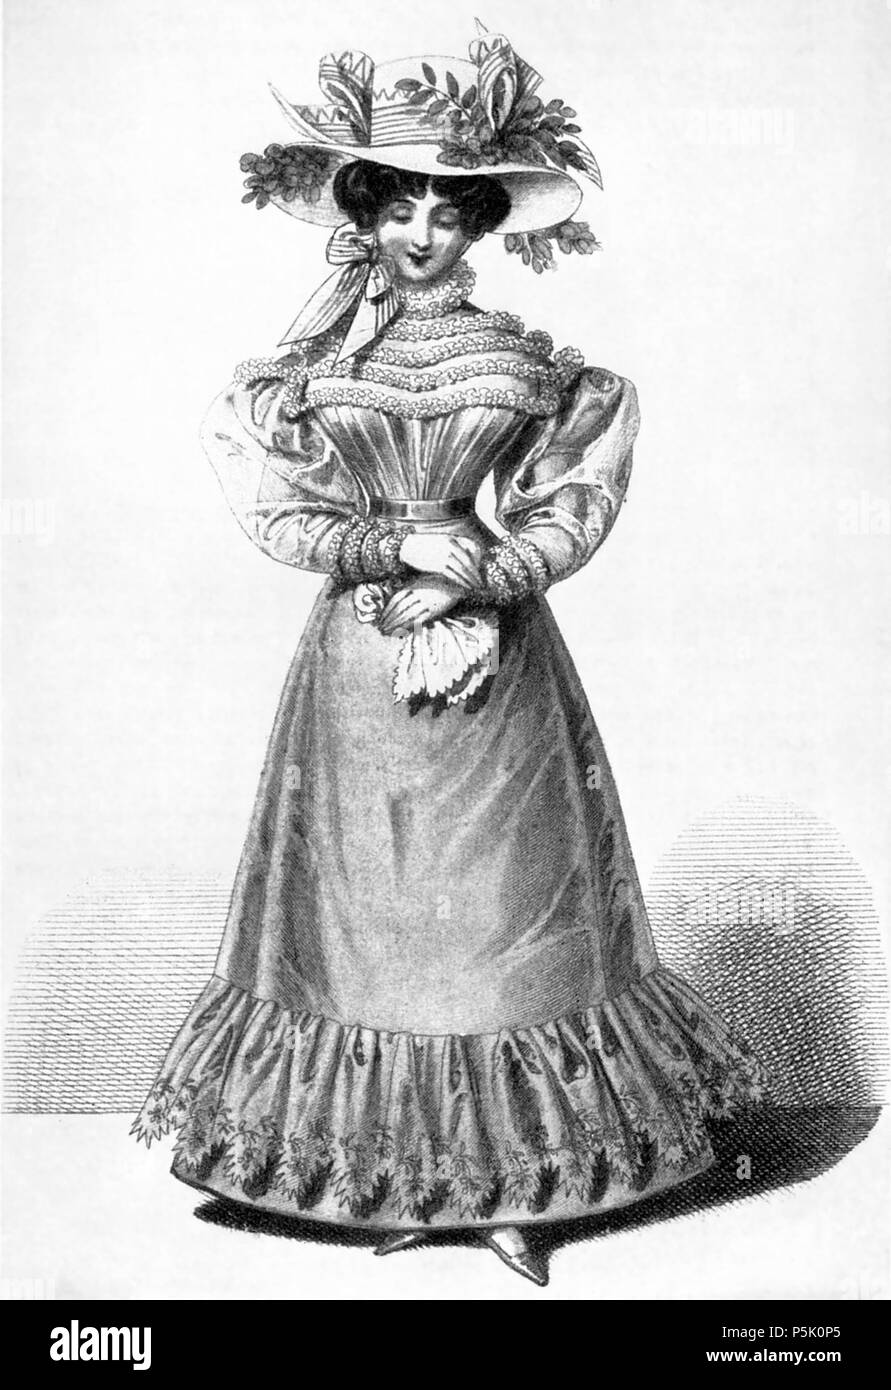 N/A. Illustration of women's outfit (some kind of day dress) from Vienna fashion magazine. Shows the trend towards recorseting in the second half of the 1820s, after the less structured styles of the empire/regency period, as well as the trends leading towards the salad-plate hat of the late 1820s / early 1830s. June 1826. unknown 1826 artist 28 1826JuniWienerModen - Stock Image